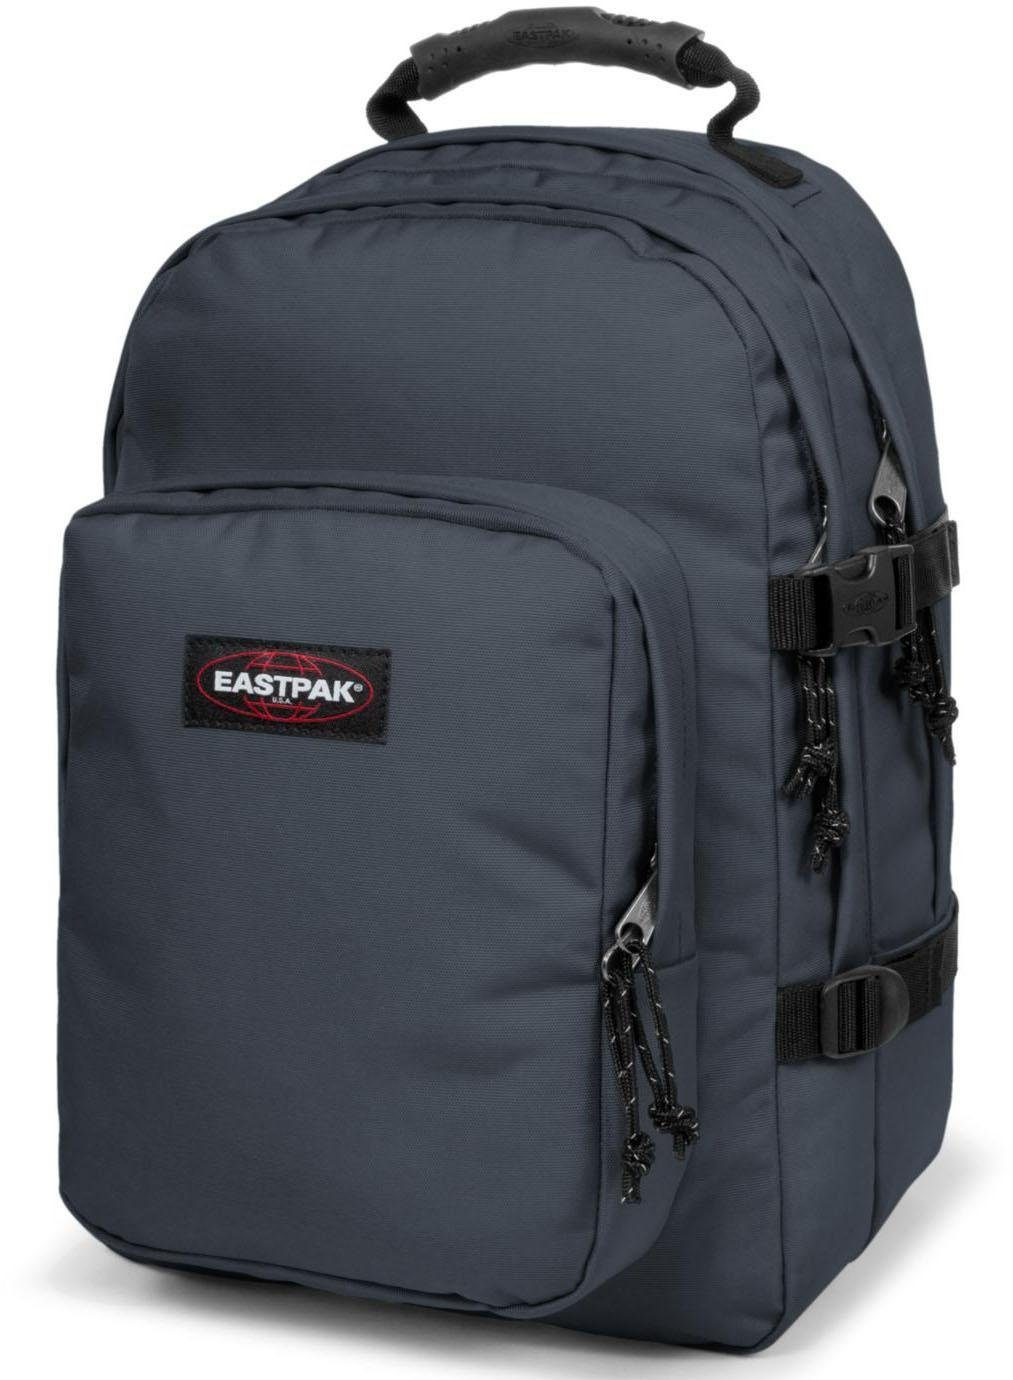 Eastpak Rucksack mit Laptopfach, »PROVIDER, quiet grey«